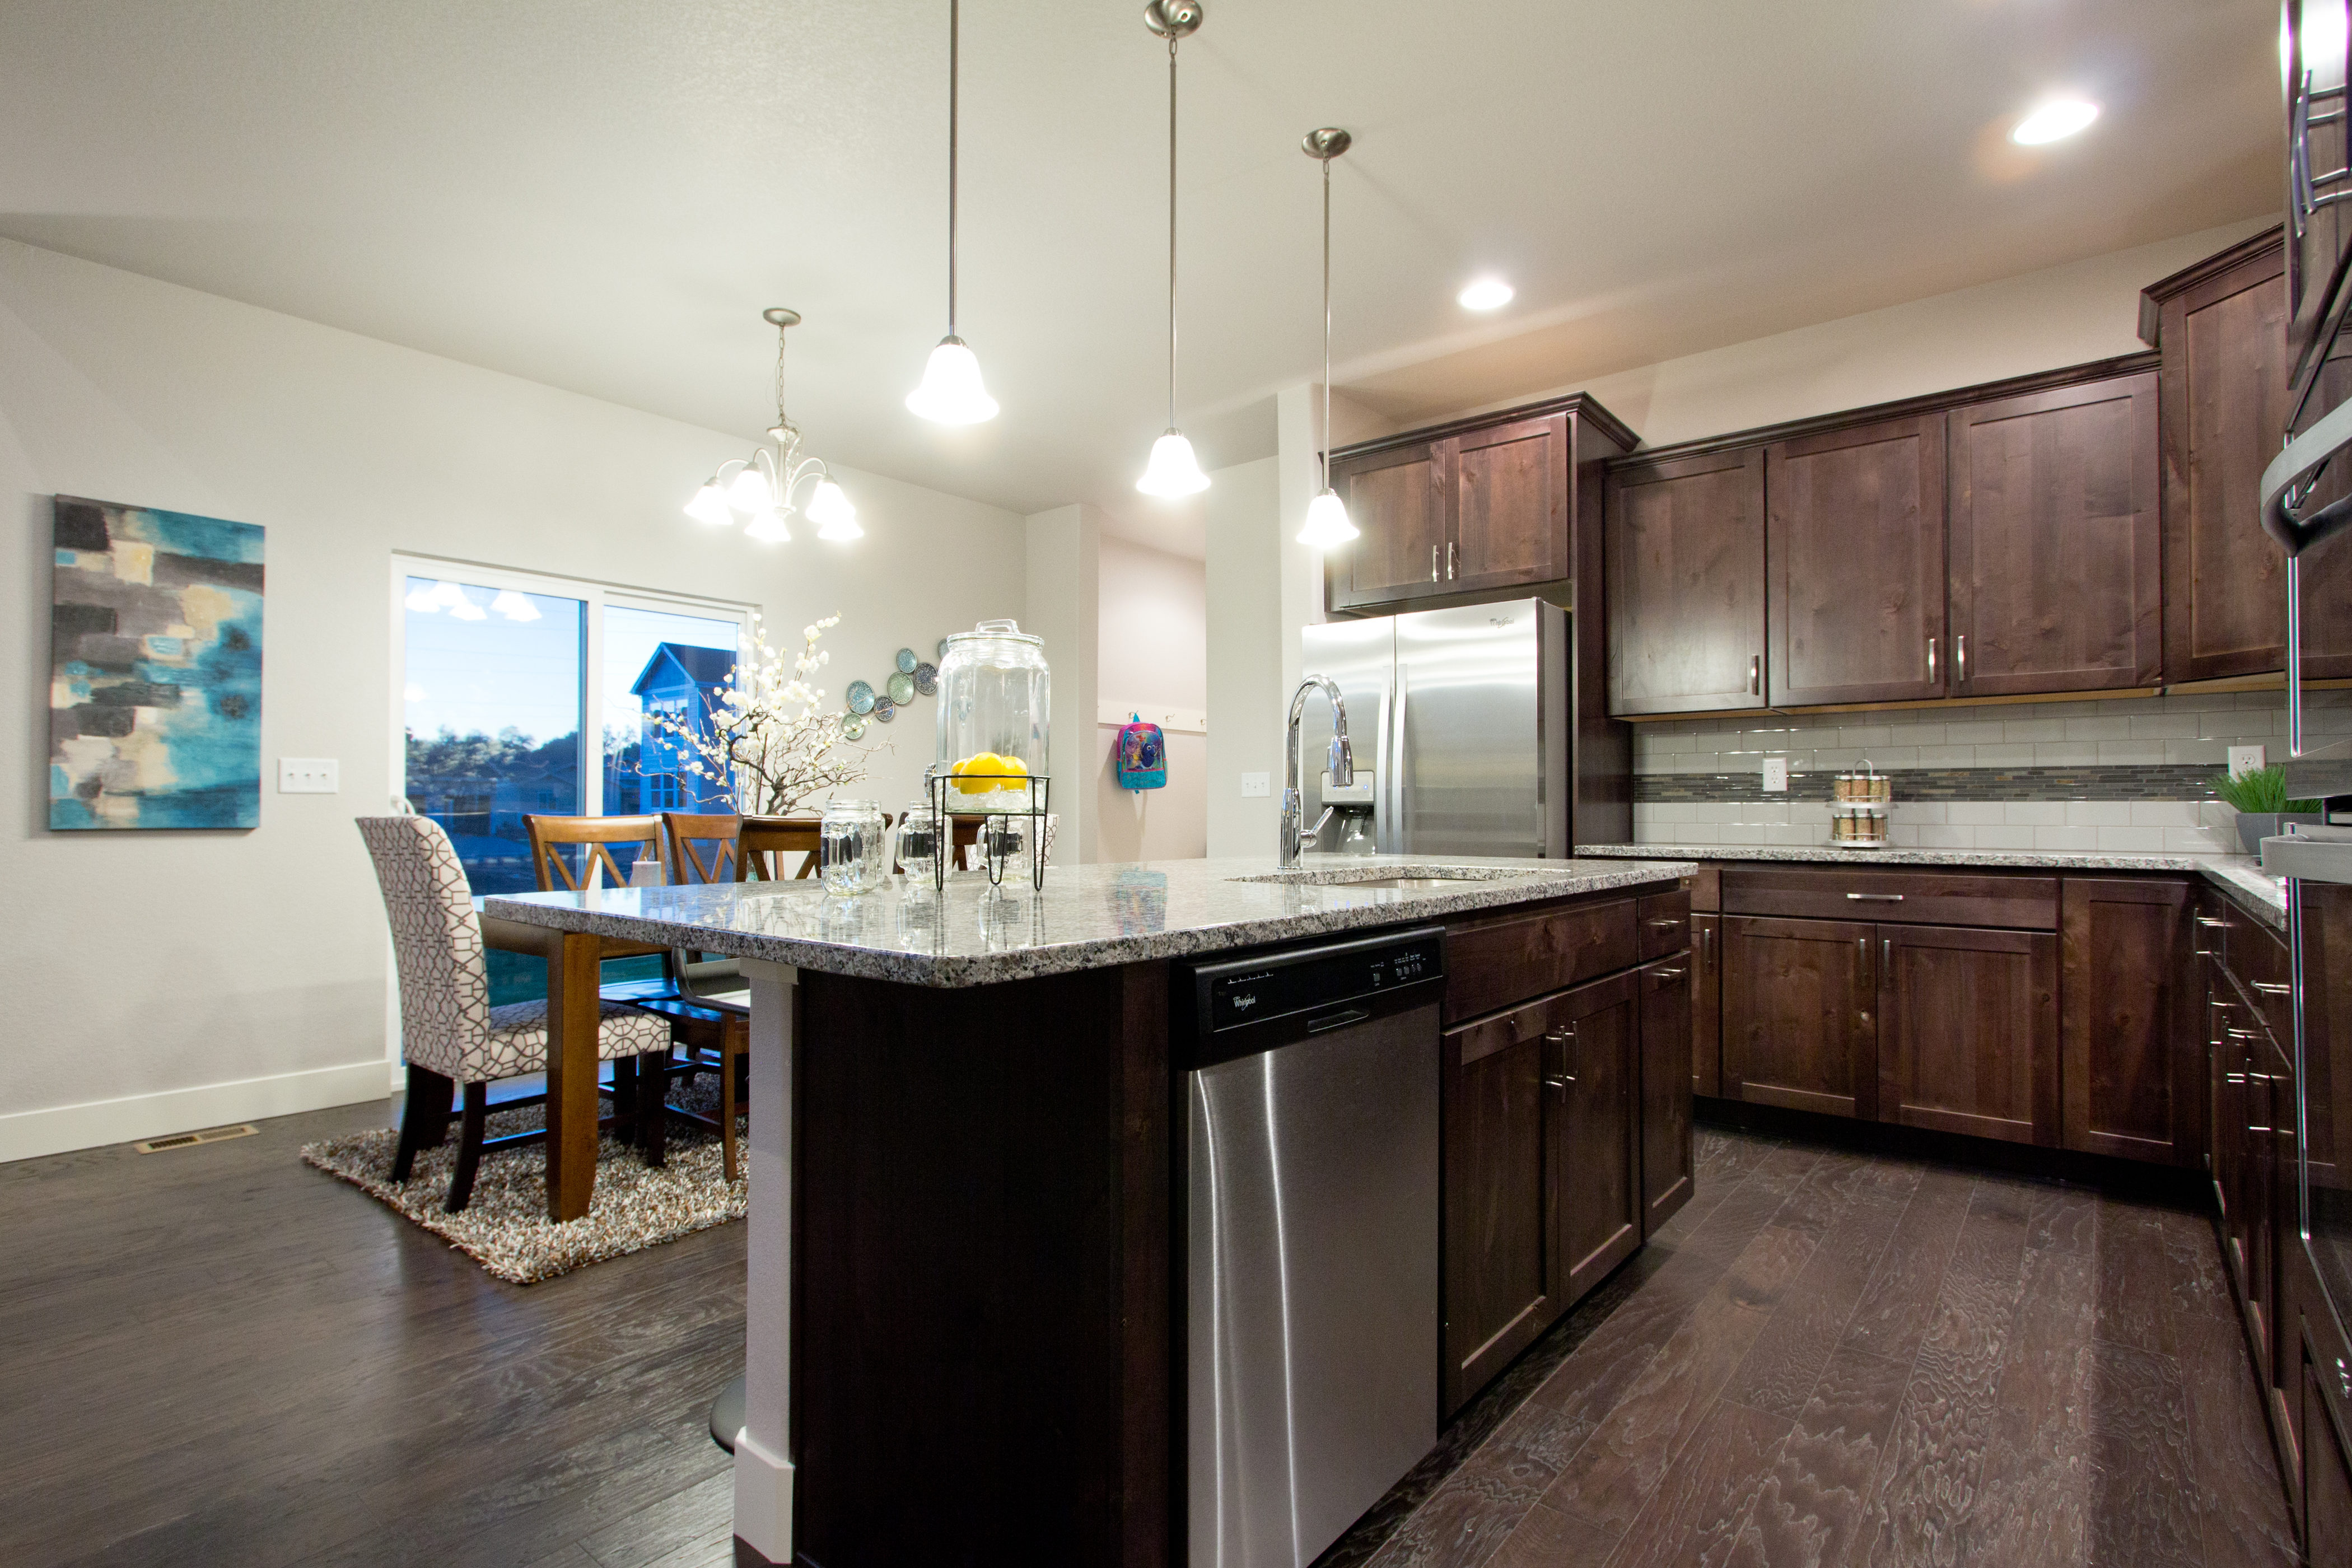 07-montrose-fort_collins-kitchen-new_homes_for_sale